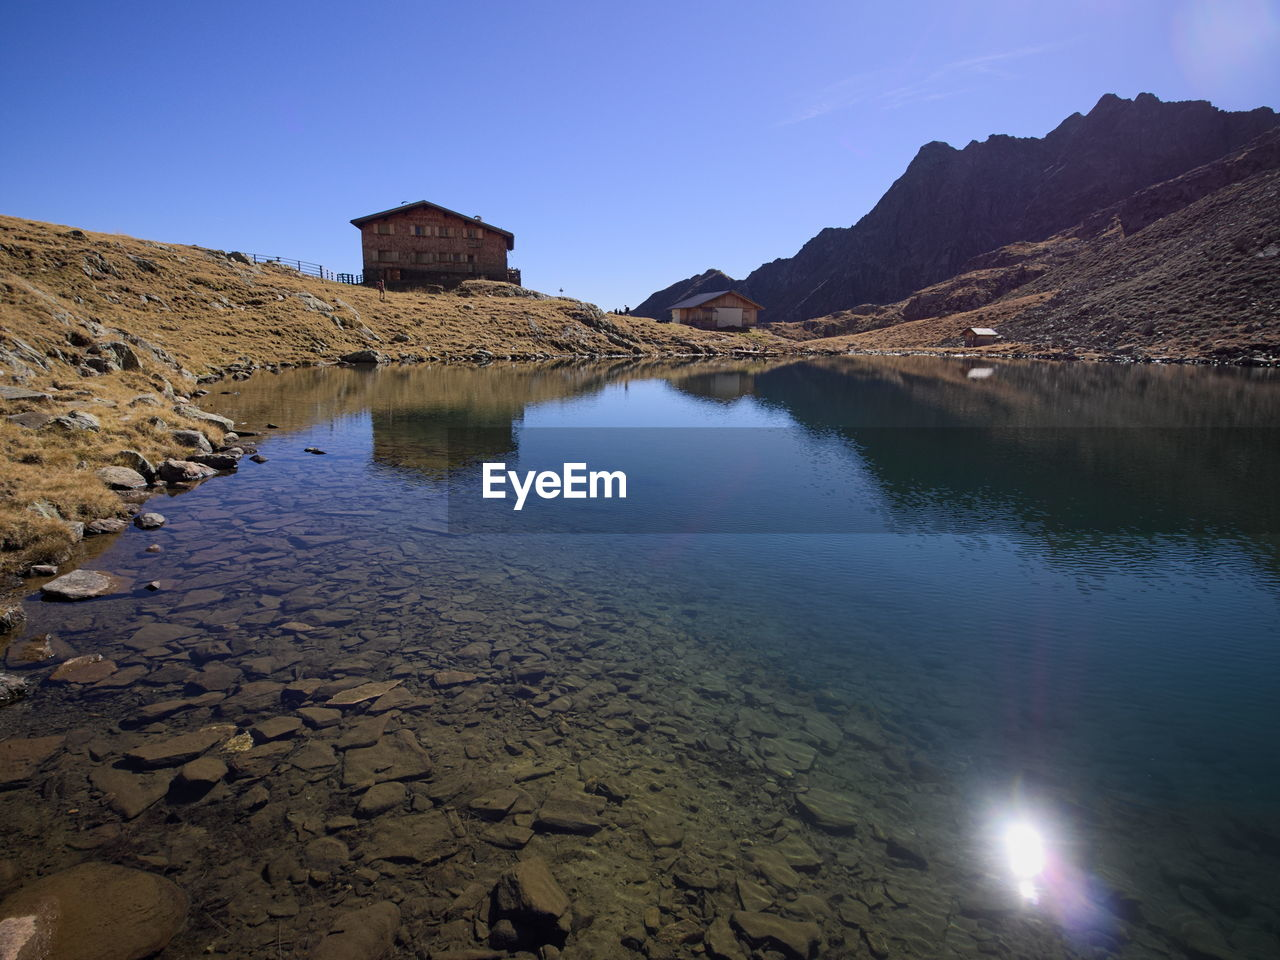 water, sky, tranquility, nature, tranquil scene, mountain, beauty in nature, clear sky, scenics - nature, no people, reflection, lake, rock, day, architecture, solid, built structure, rock - object, non-urban scene, outdoors, arid climate